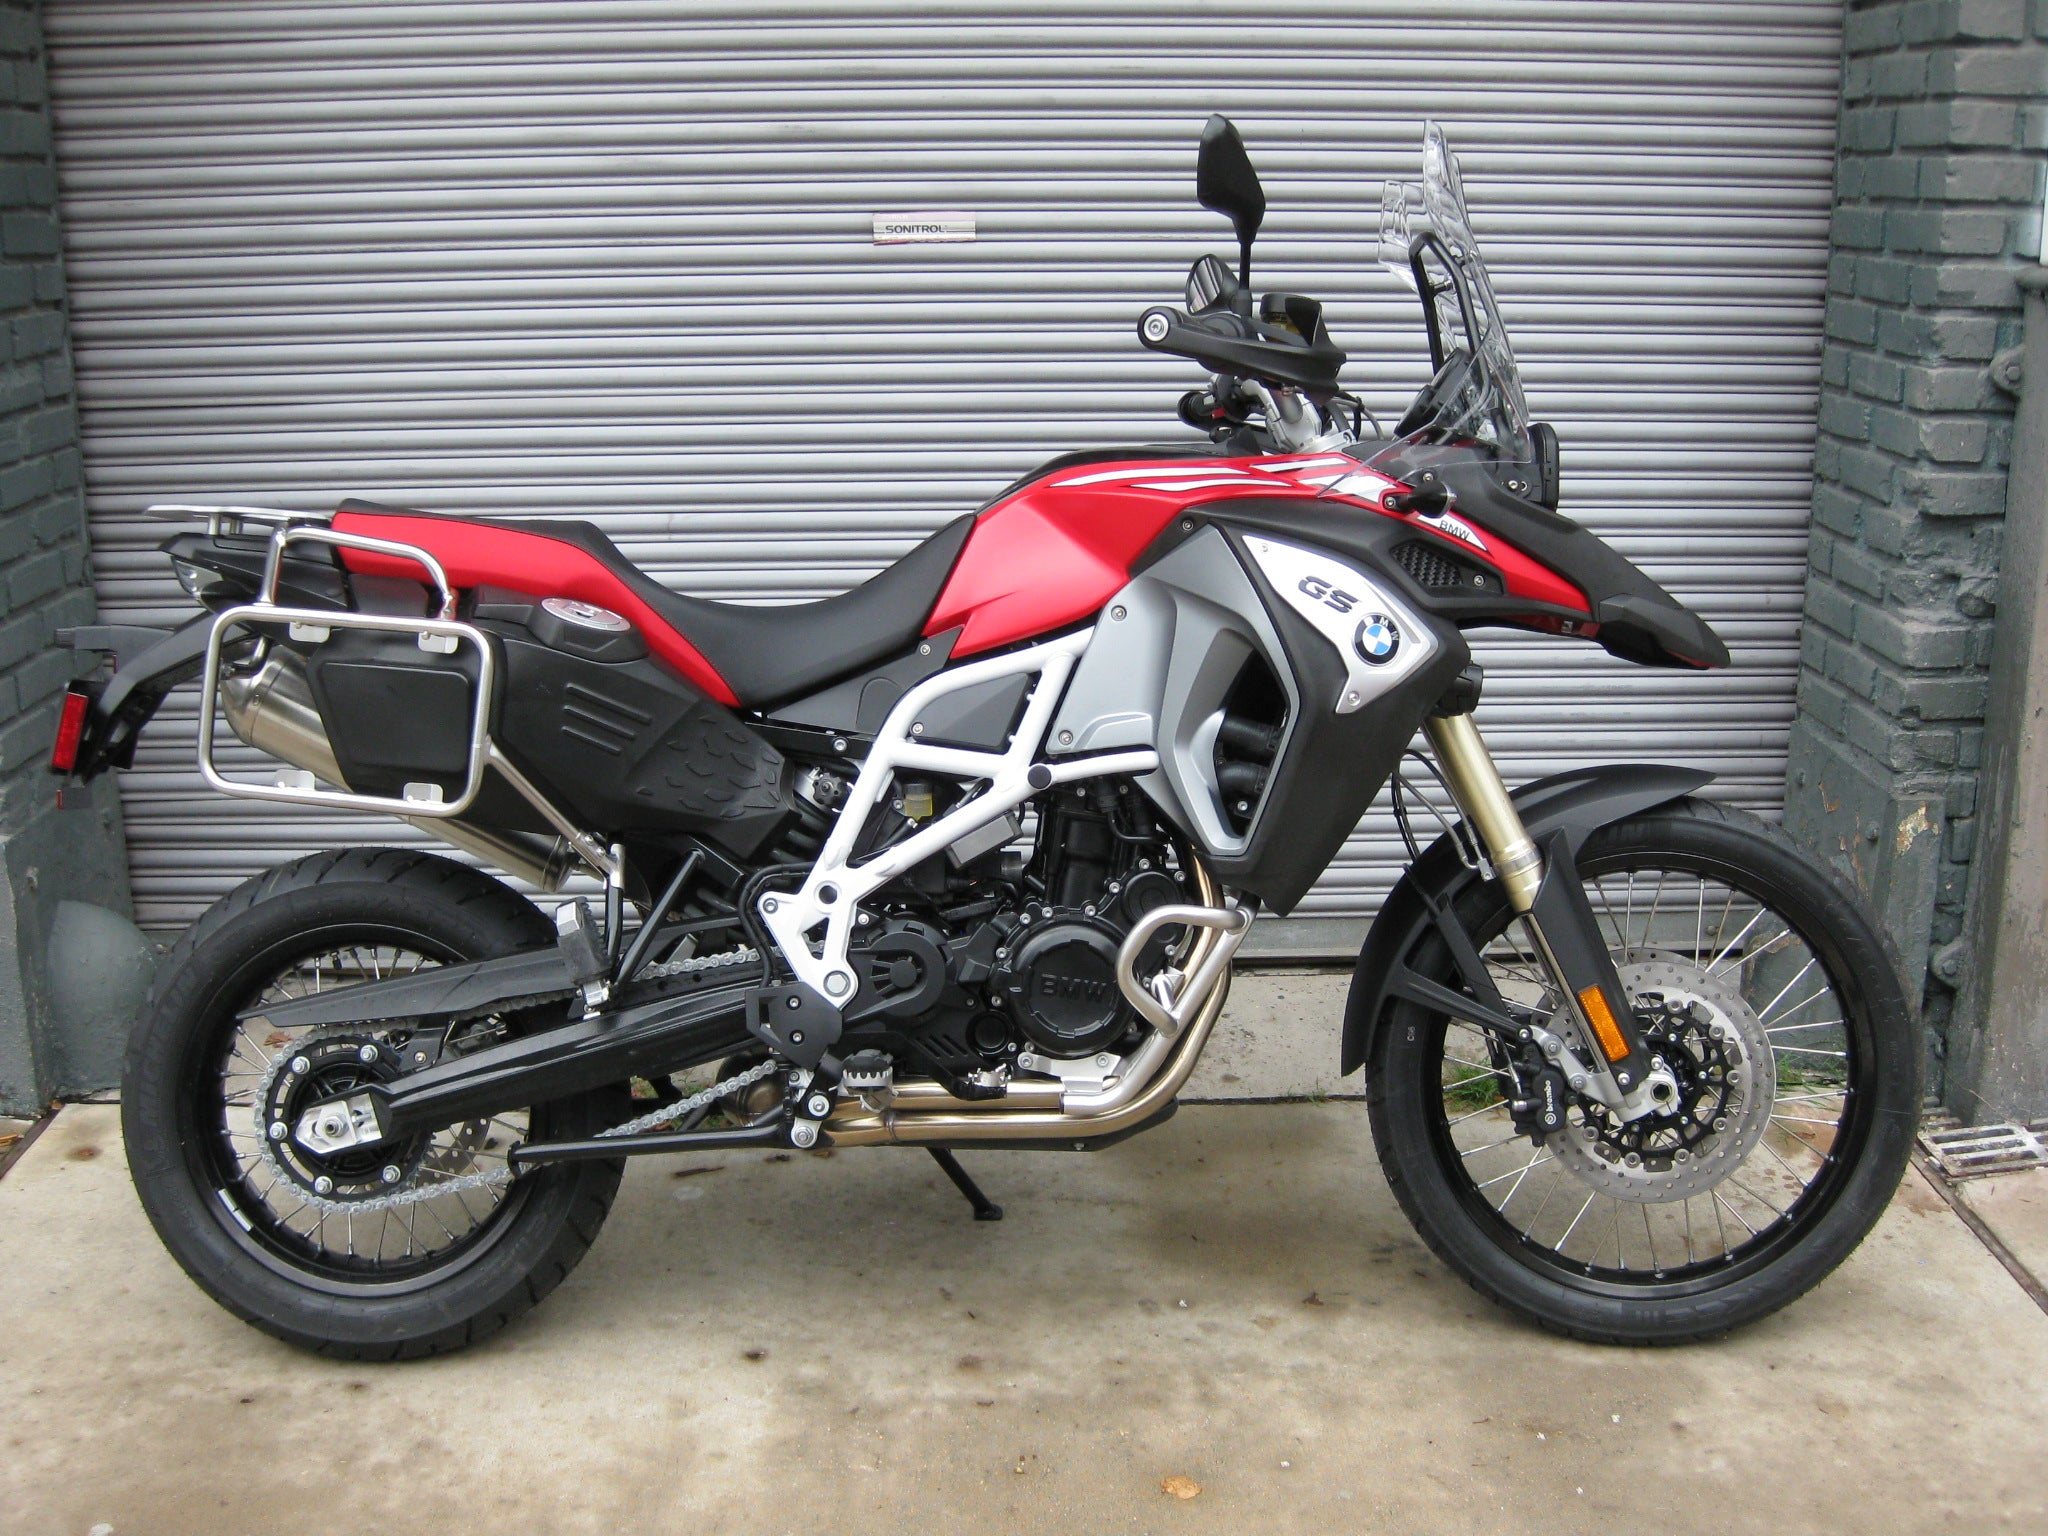 2017 bmw f 800 gs adventure racing red the transportation revolution new orleans ttrno. Black Bedroom Furniture Sets. Home Design Ideas